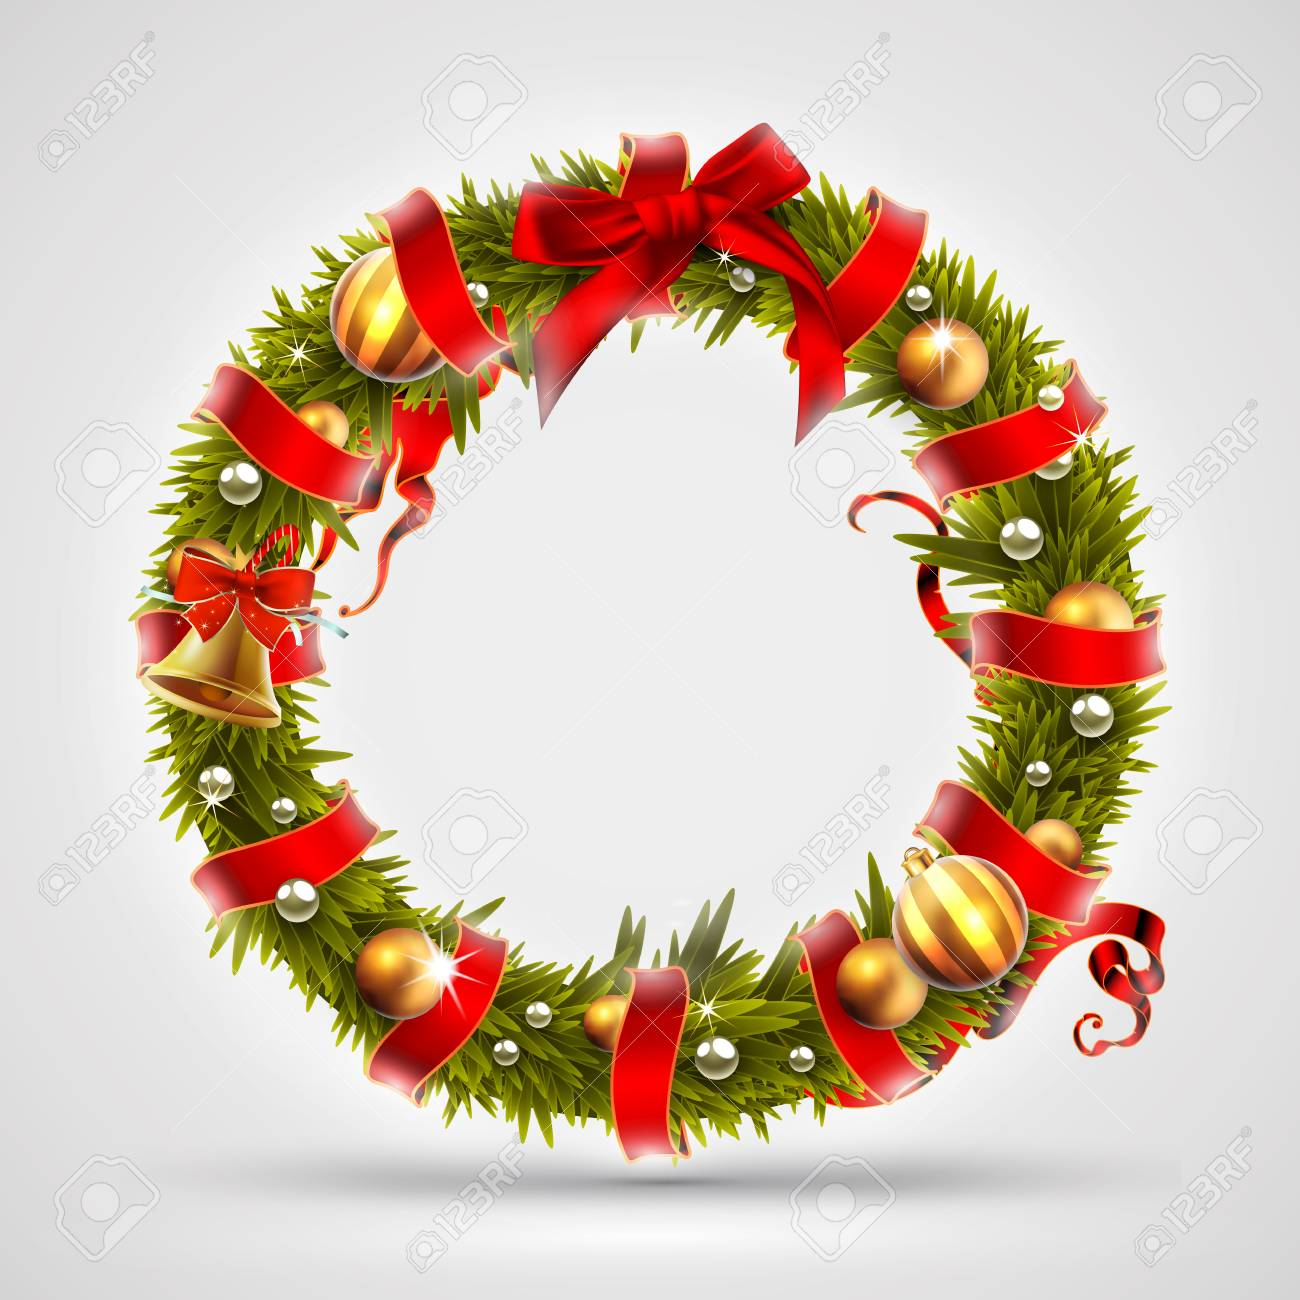 Christmas Font Letter O Of Christmas Tree Branches Decorated